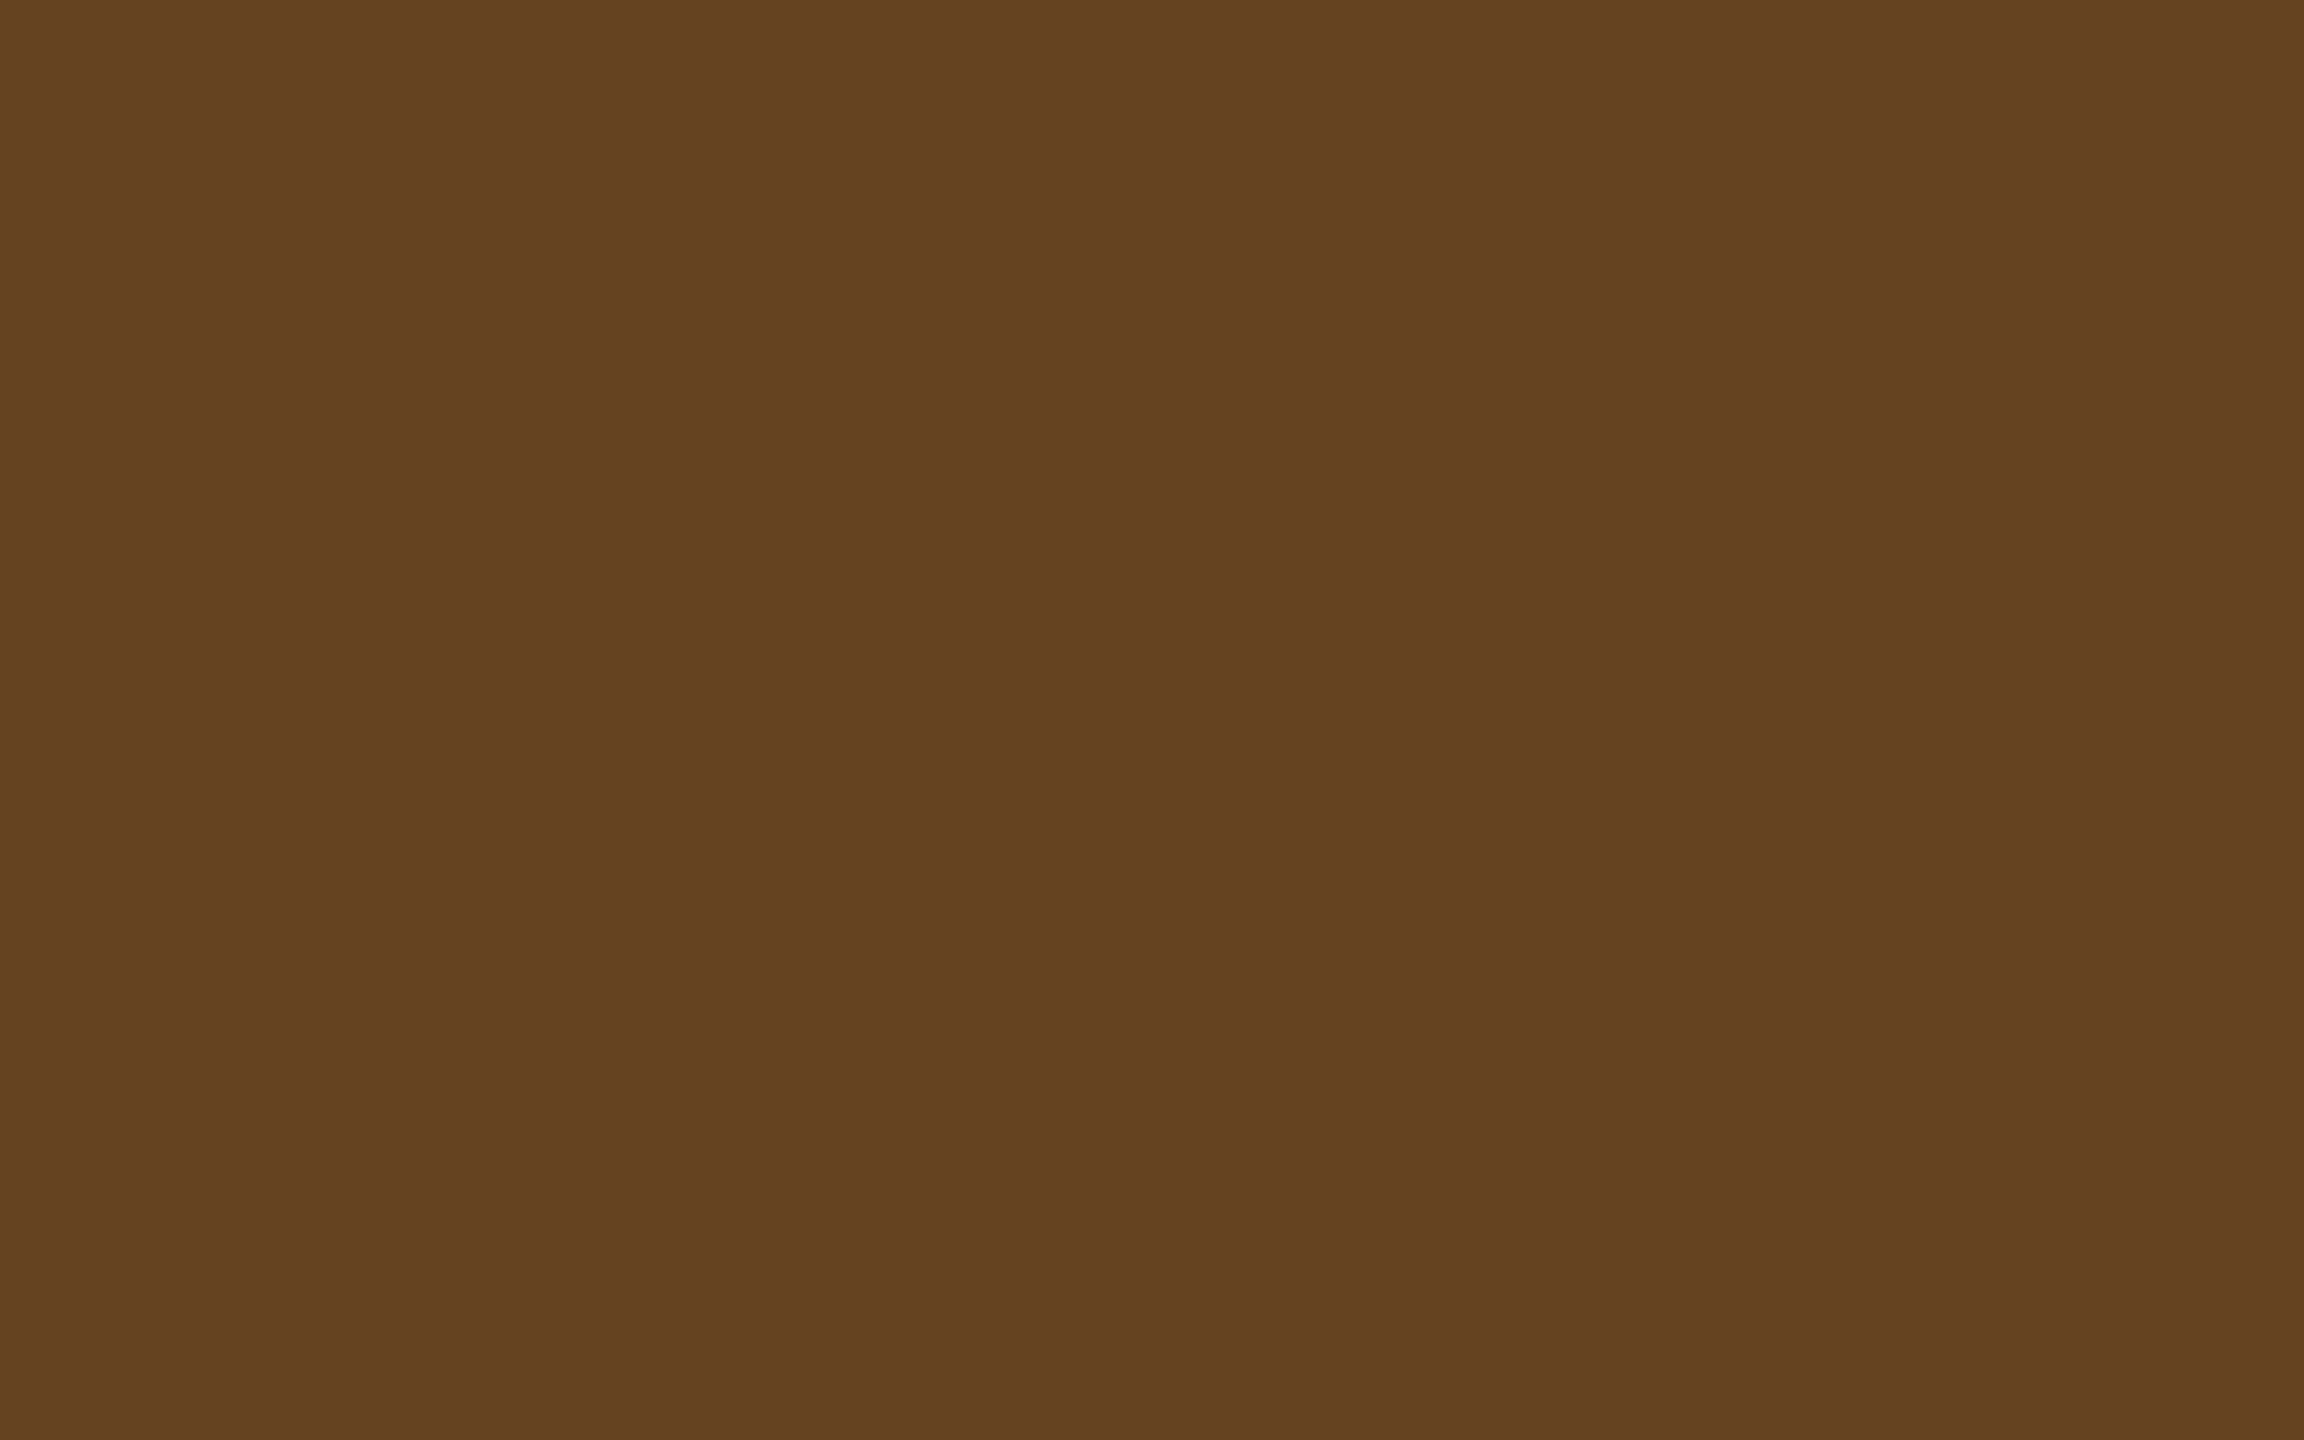 2304x1440 Dark Brown Solid Color Background